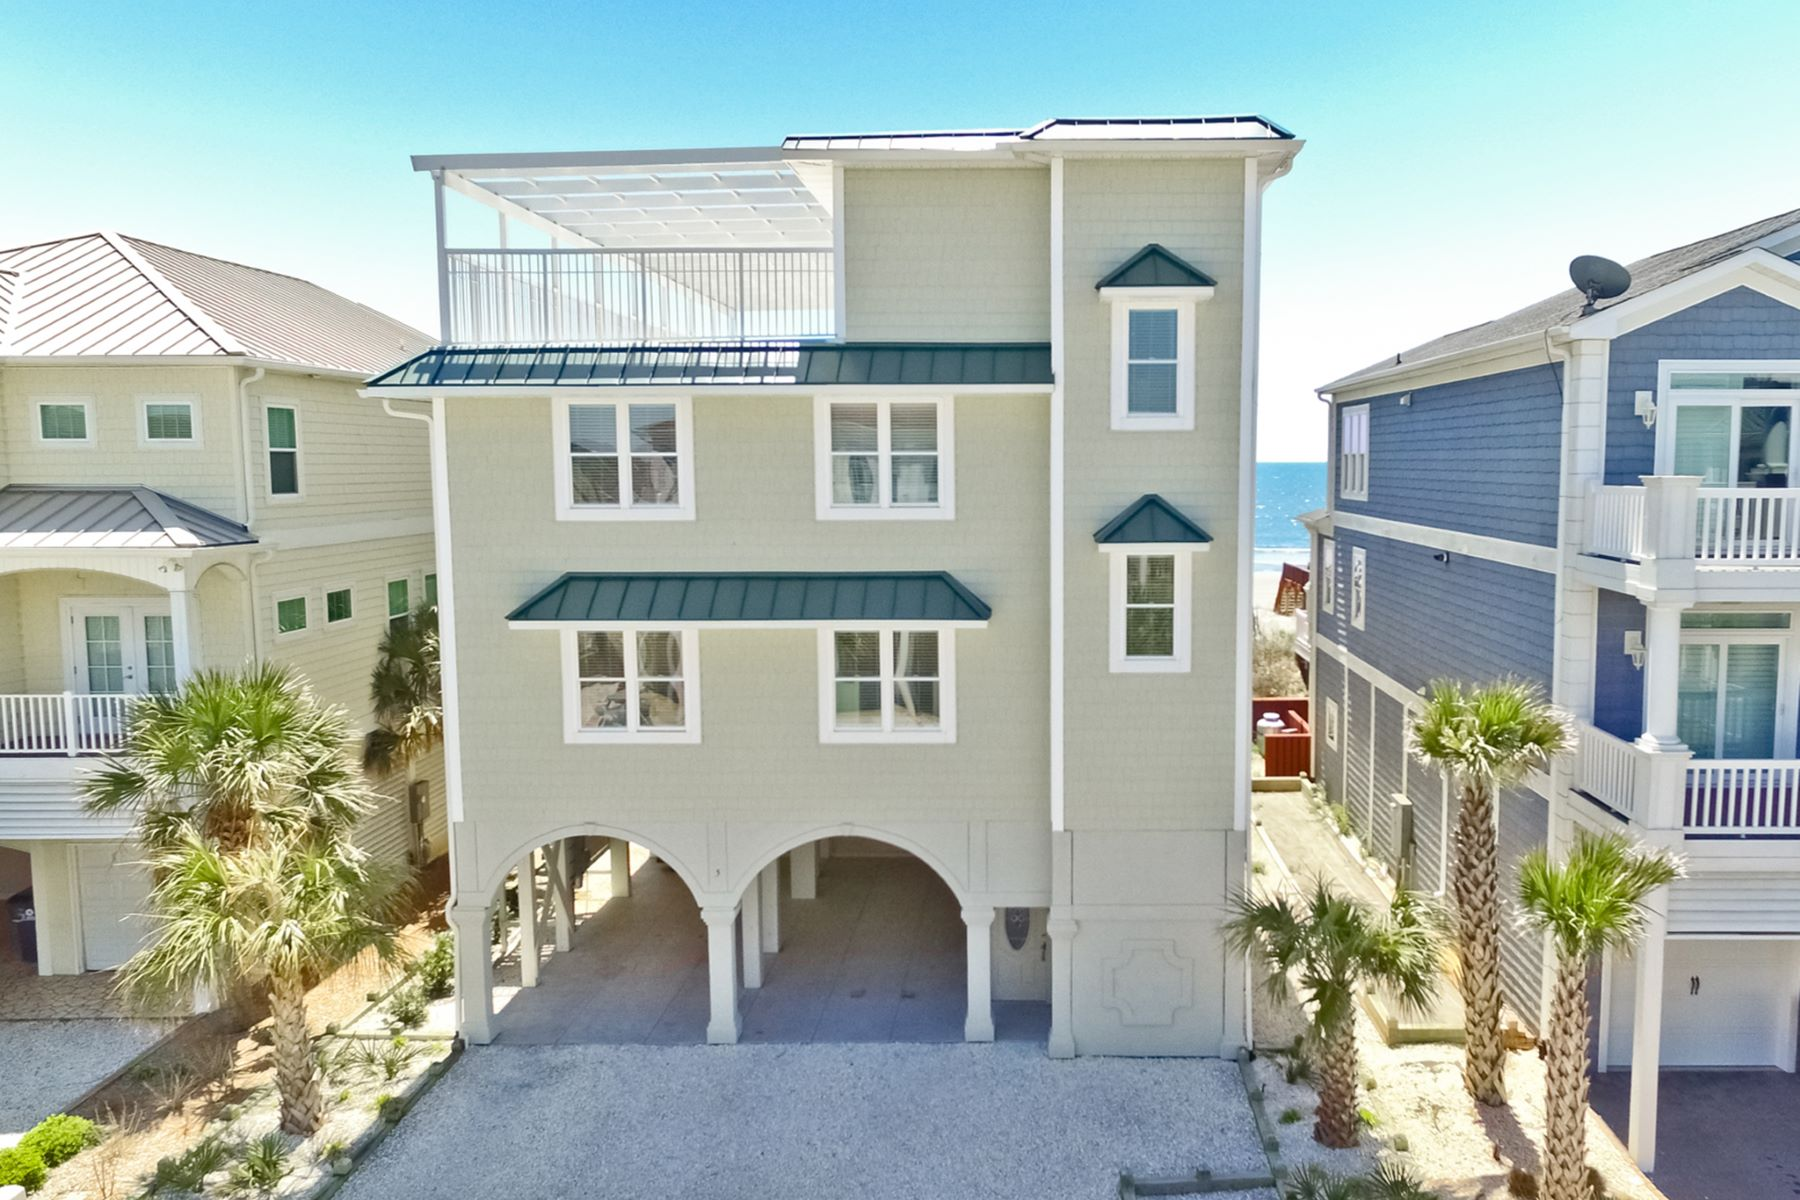 Single Family Homes for Active at Oceanfront Oasis with Rooftop Deck 5 Coggeshall Drive Ocean Isle Beach, North Carolina 28469 United States